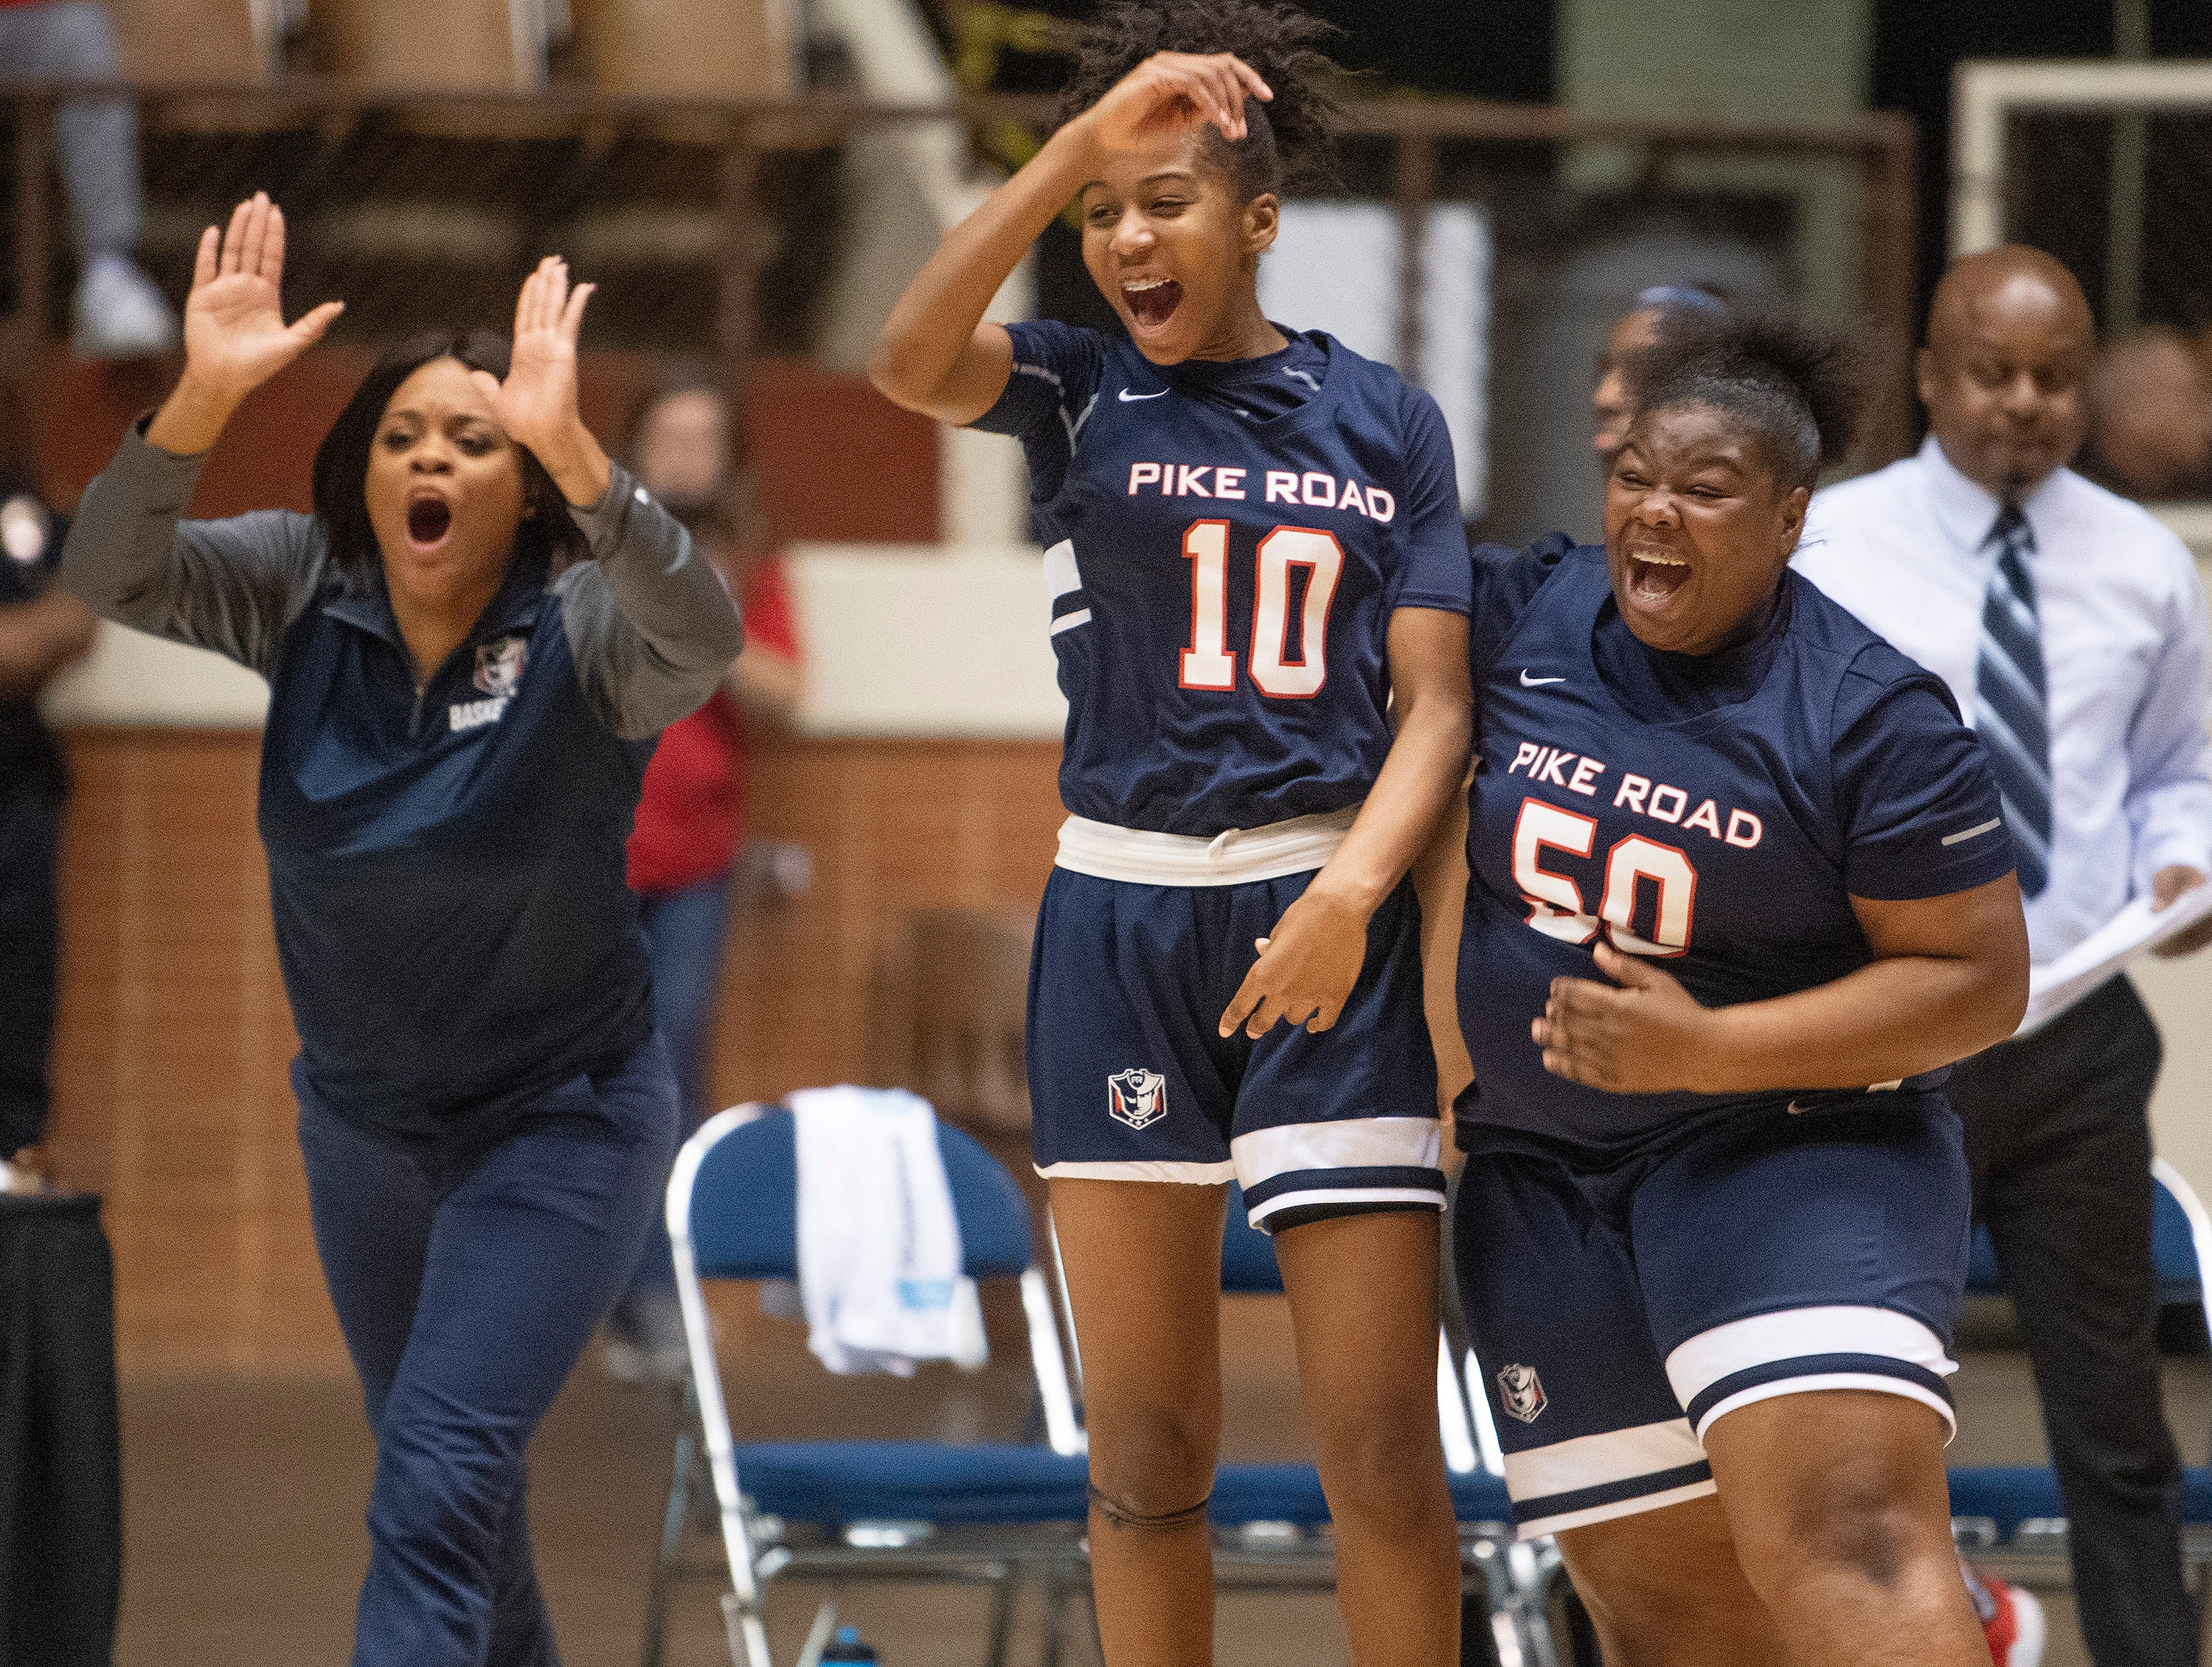 Pike Road's Jada Roberts and Chyna Patterson celebrate the overtime win over Straughn during AHSAA regional action Garrett Coliseum in Montgomery, Ala., on Saturday February 16, 2019.